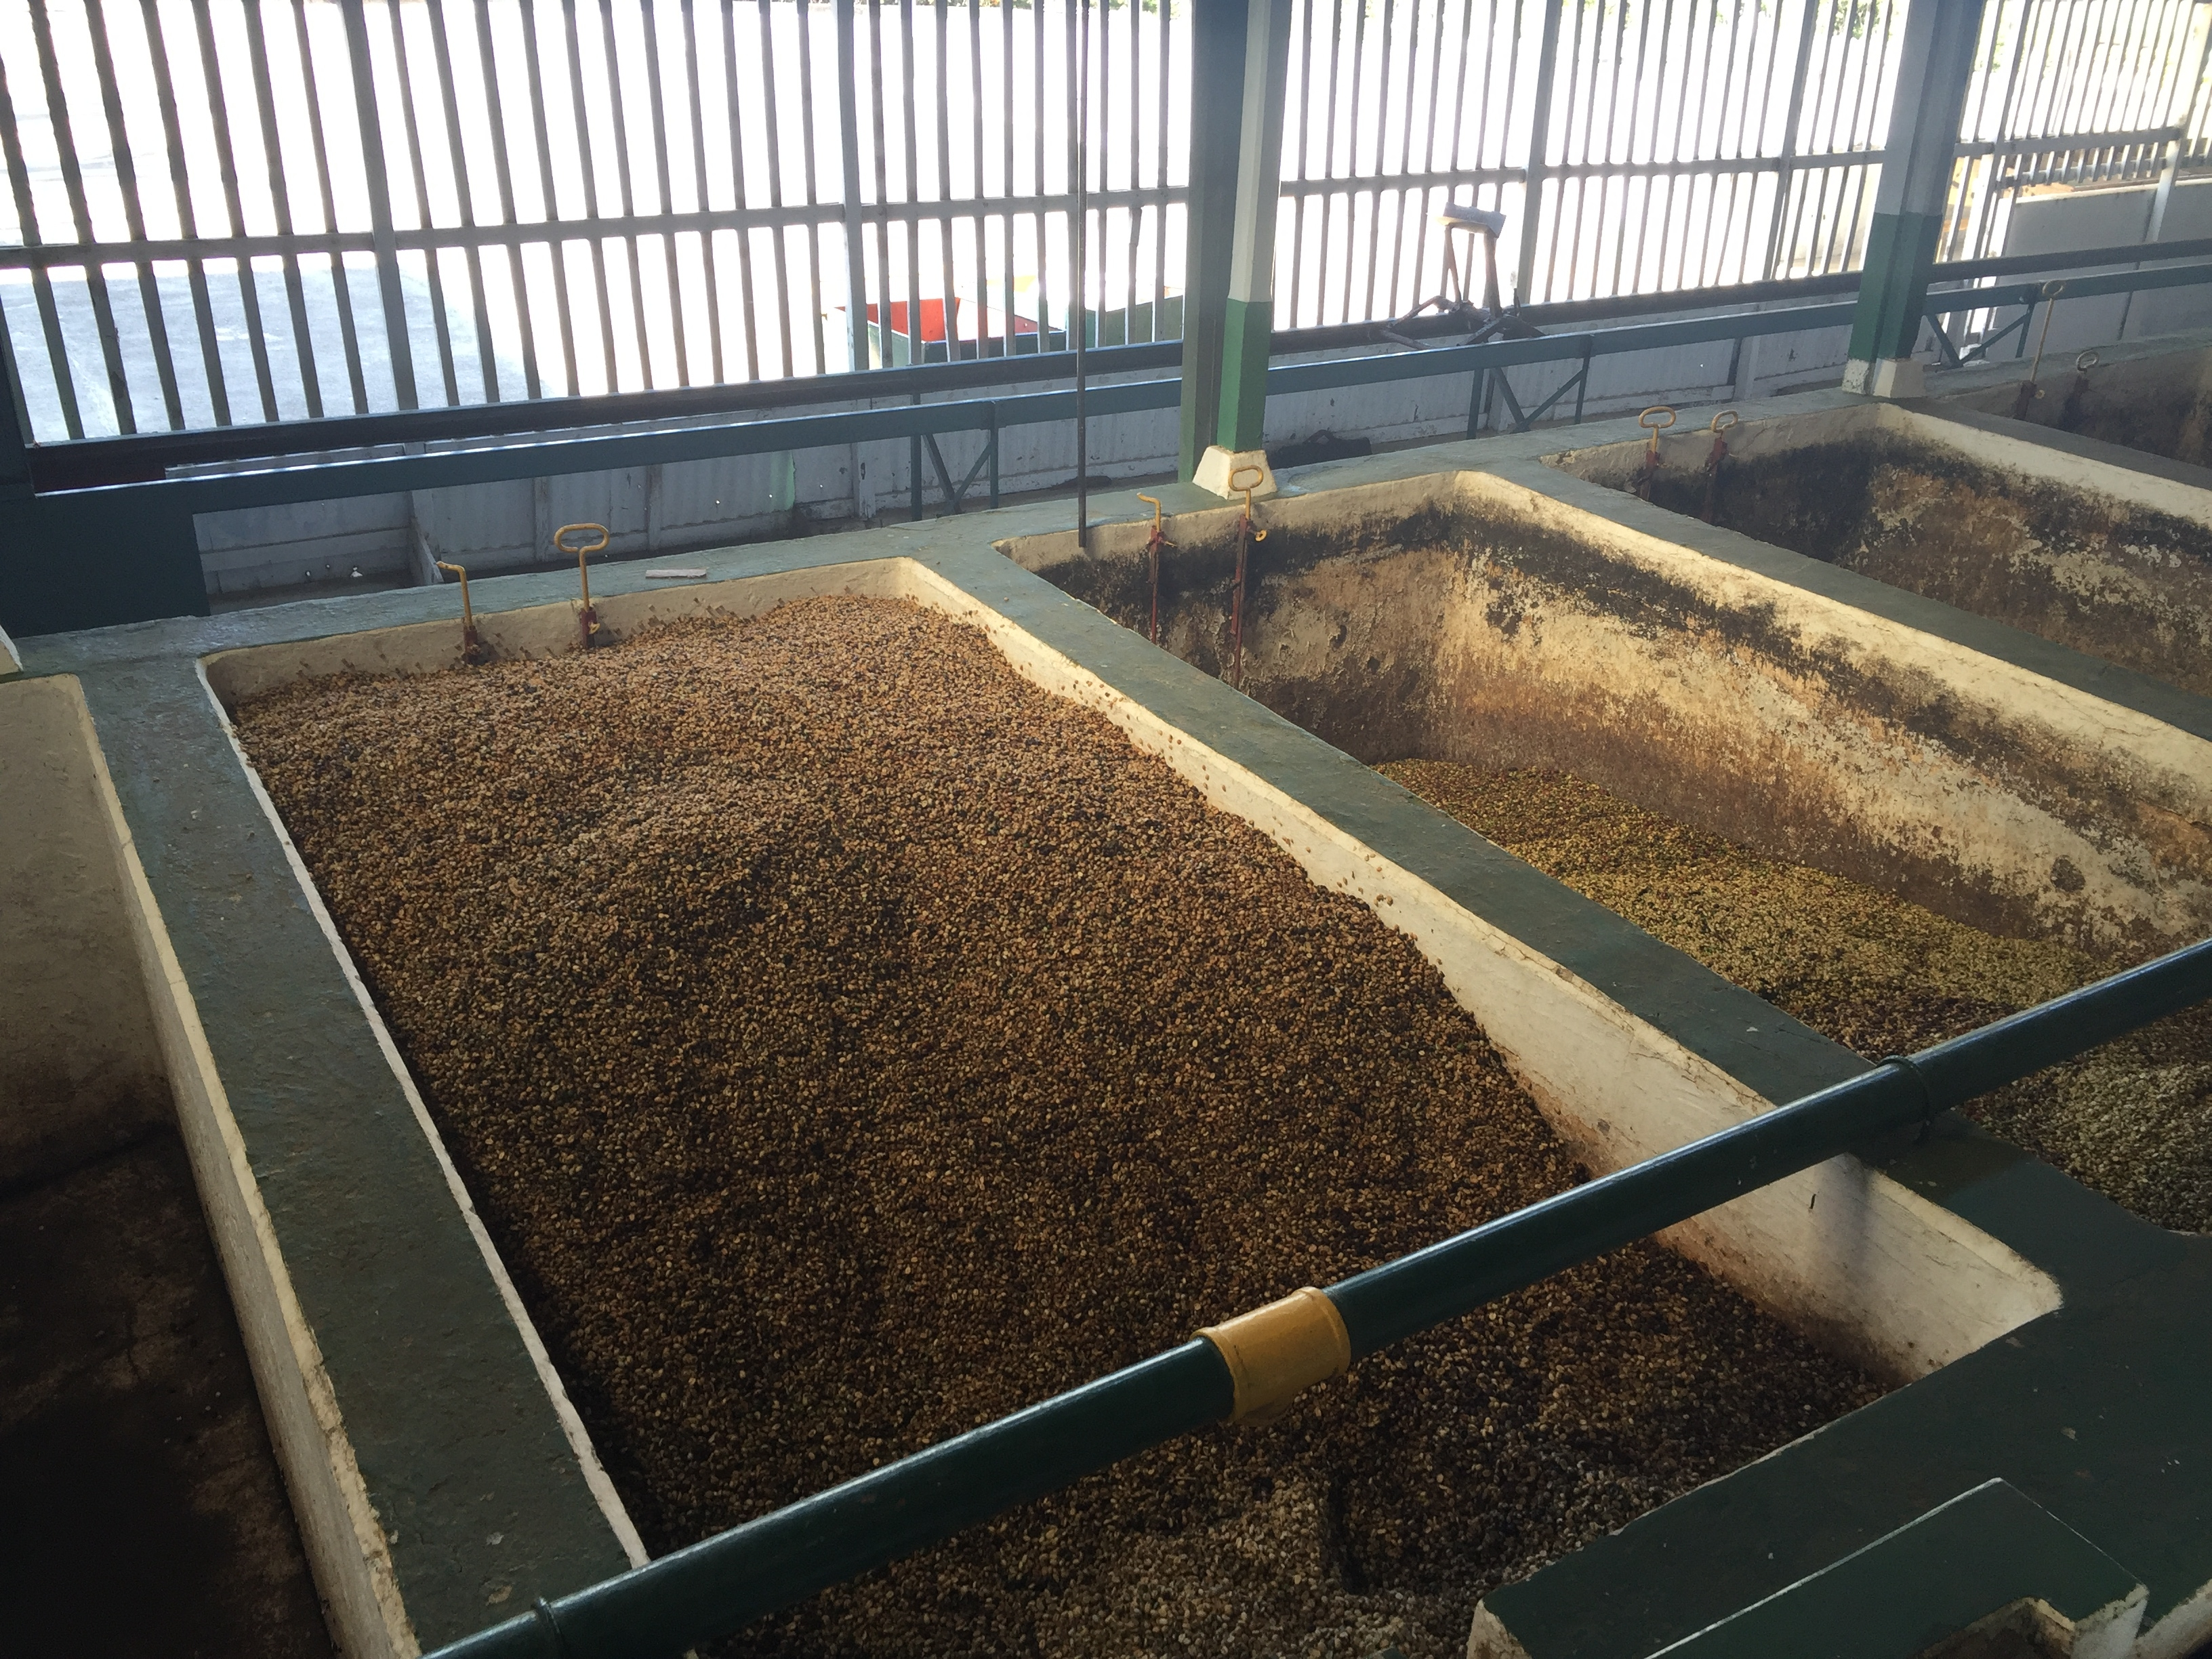 Fermenting coffee beans at Doka Estate in Alajuela, Costa Rica. Photo credit: M. Ciavardini